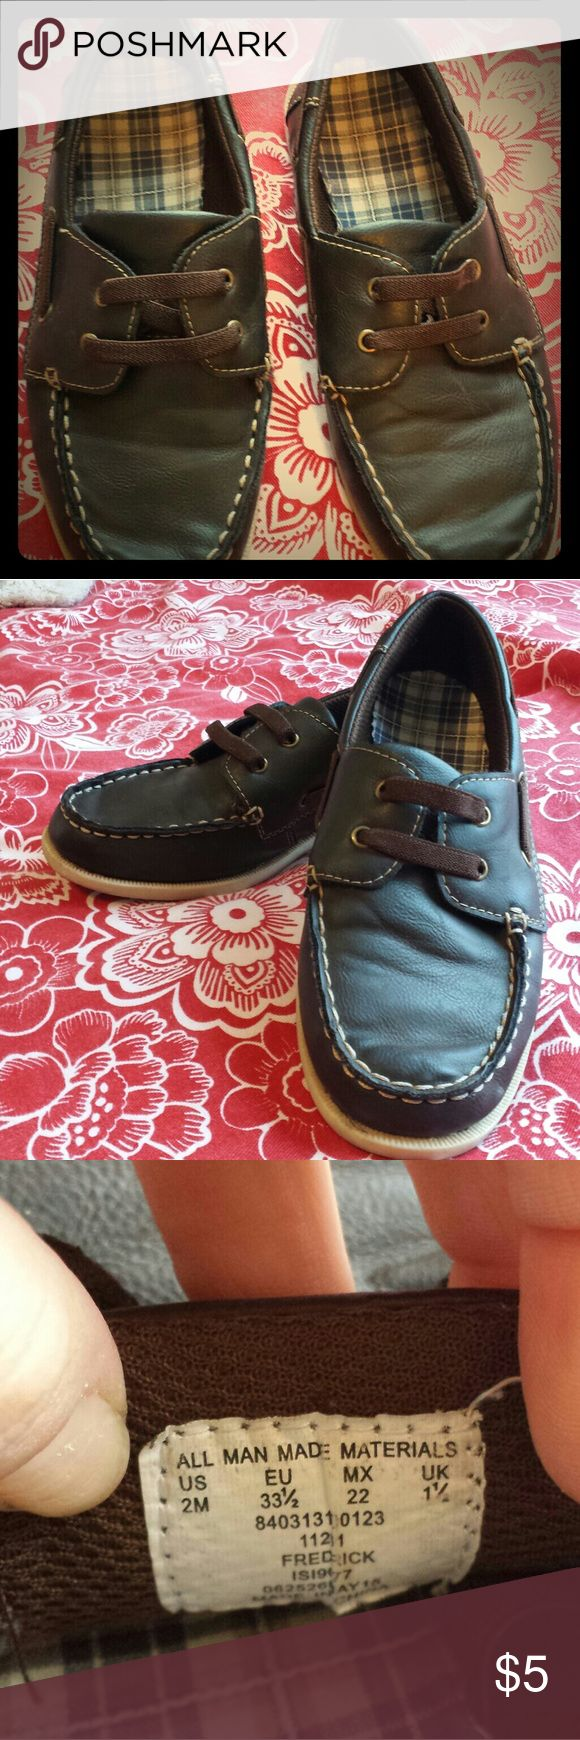 Boys size 2 loafer style shoes Used but not worn much. Cute slip on shoe. Great for summer semi-casual outfits. No laces, velcro, or buttons. Each piece listex separately.  Bundle and make an offer for savings! Route 66 Shoes Dress Shoes